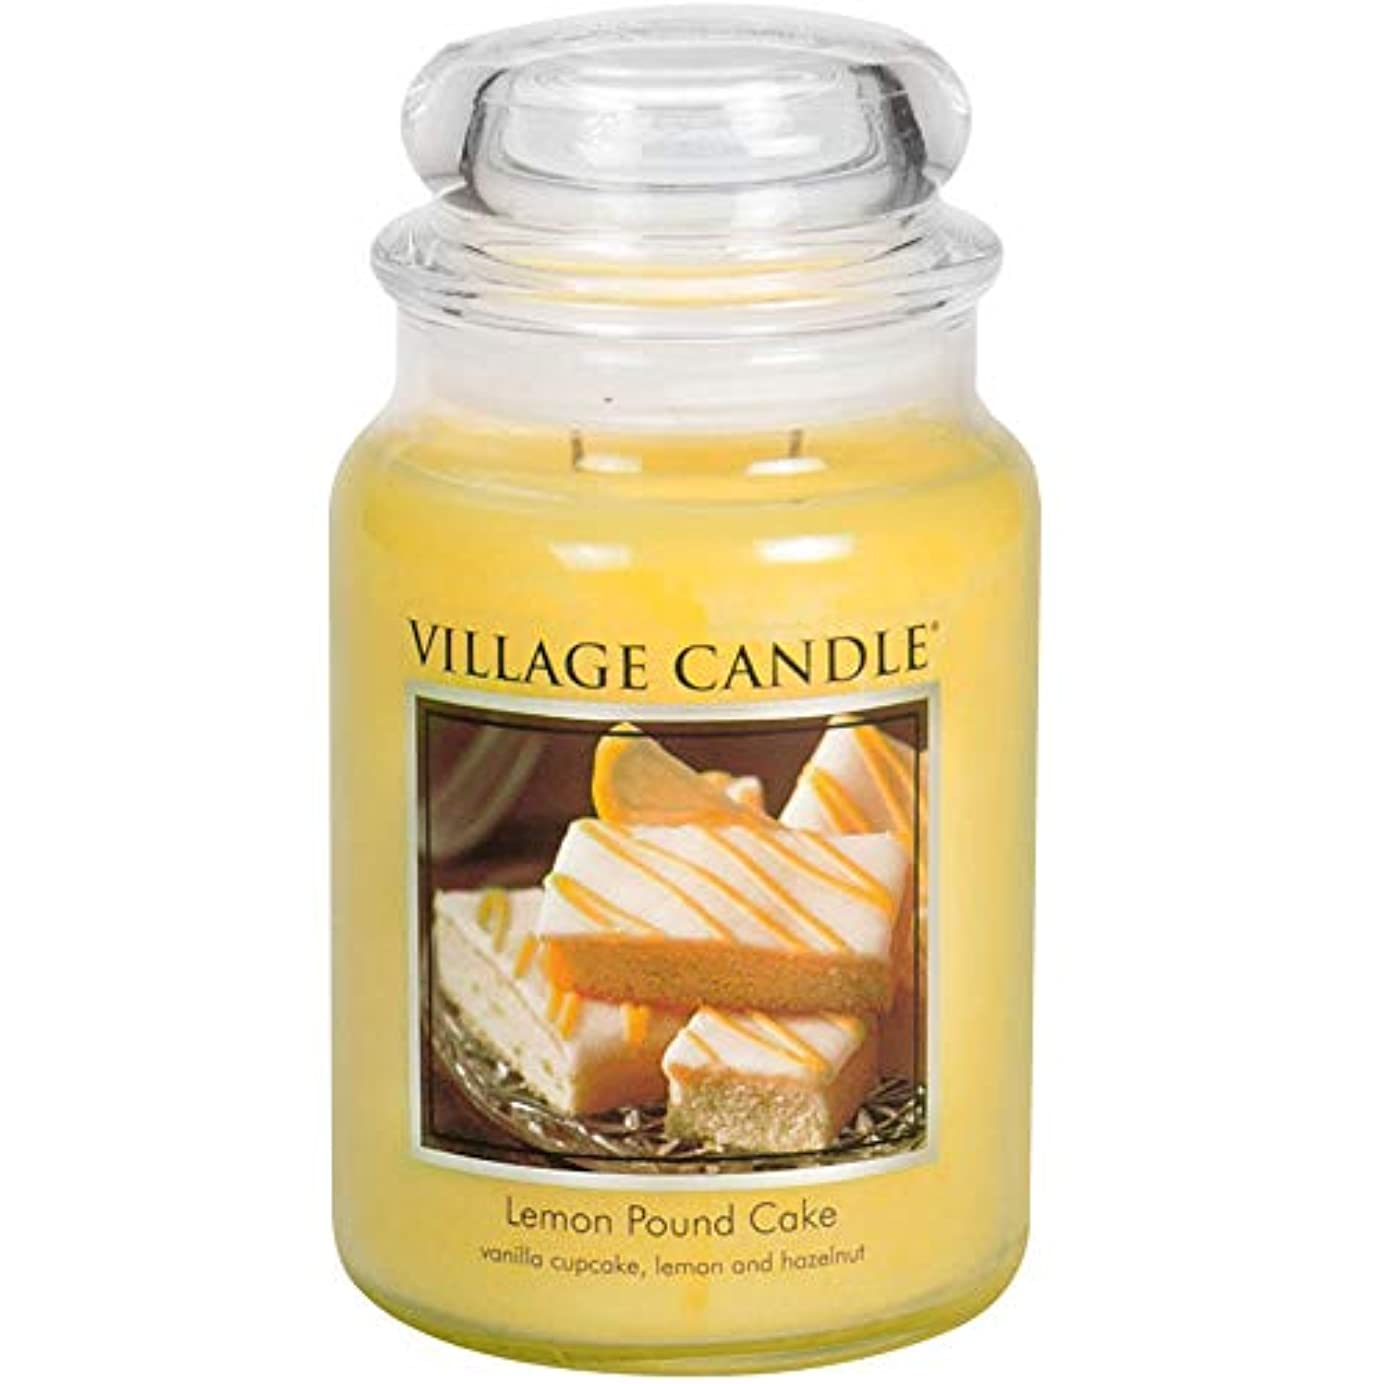 Village Candle Large Fragranced Candle Jar?つ - 17cm x 10cm - 26oz (1219g)- Lemon Pound Cake - upto 170 hours burn...